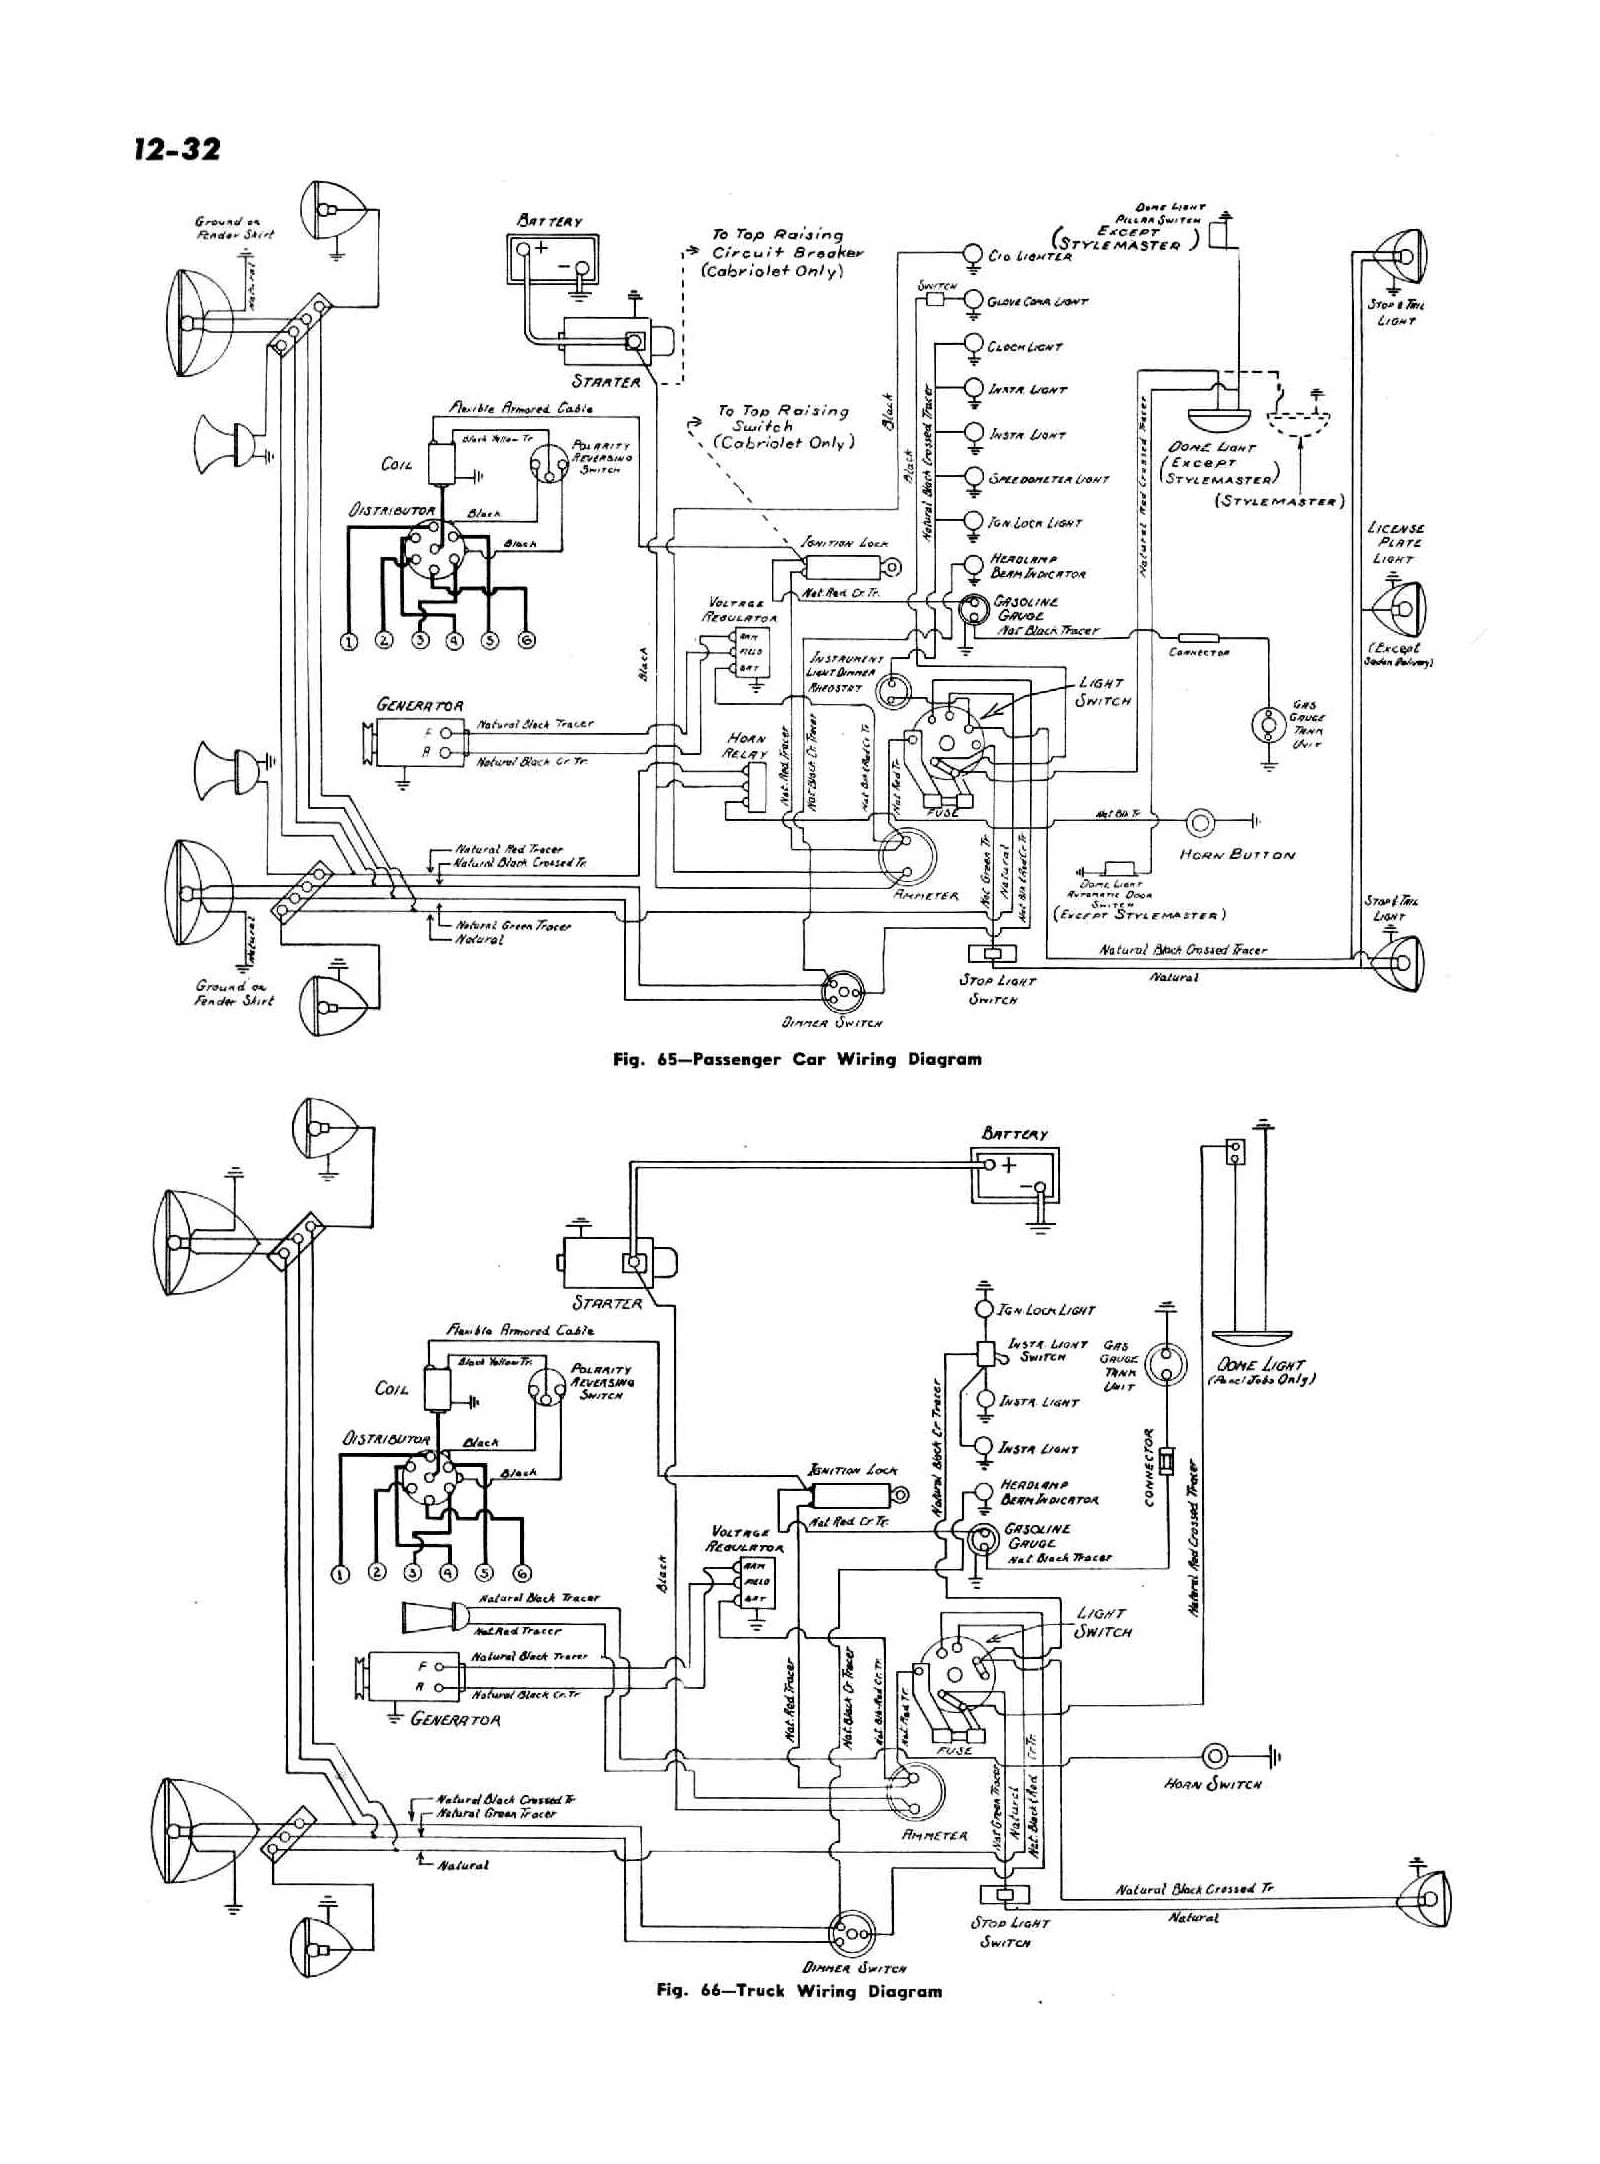 hight resolution of 1947 ford wiring diagram wiring diagram third level rh 1 14 jacobwinterstein com 64 ford headlight switch diagram 64 ford headlight switch wiring